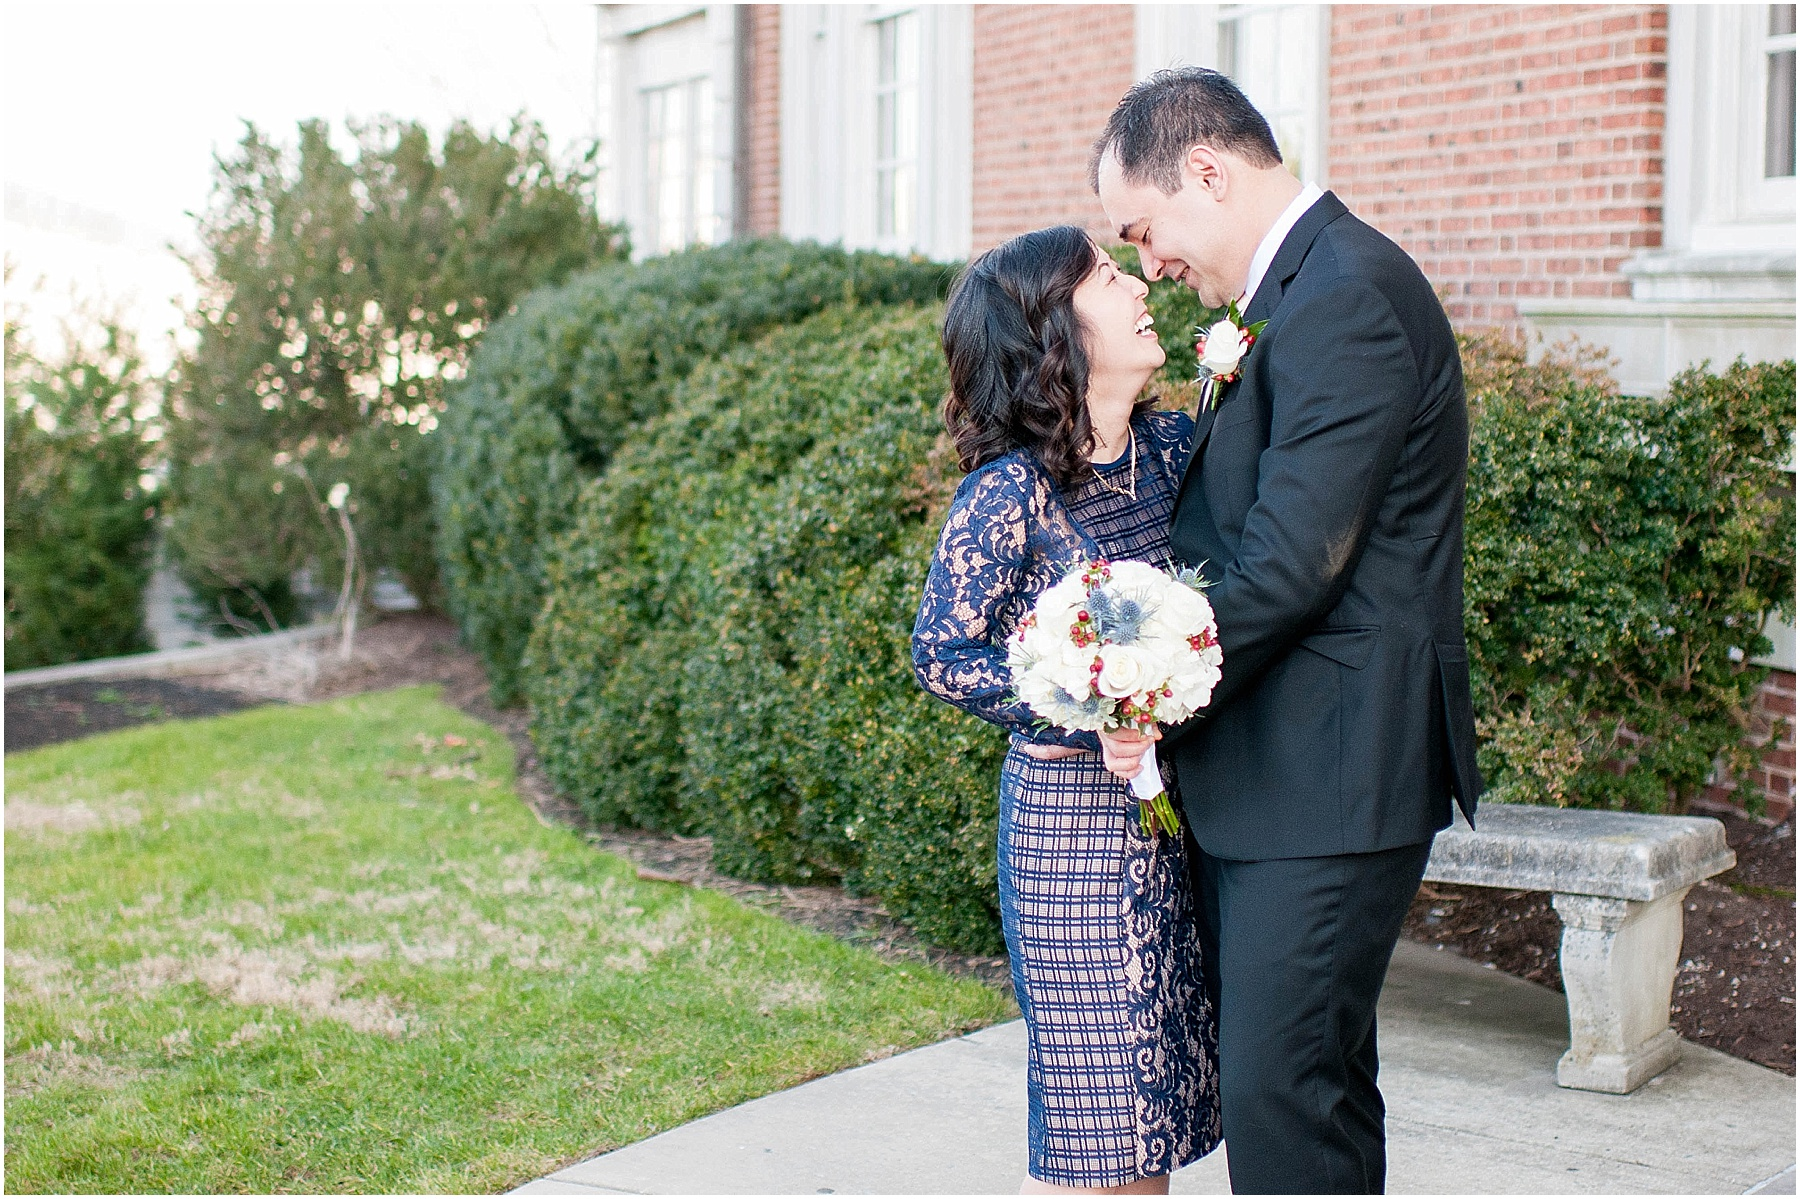 Small intimate wedding at Mansion at Strathmore - Ana Isabel Photography 17